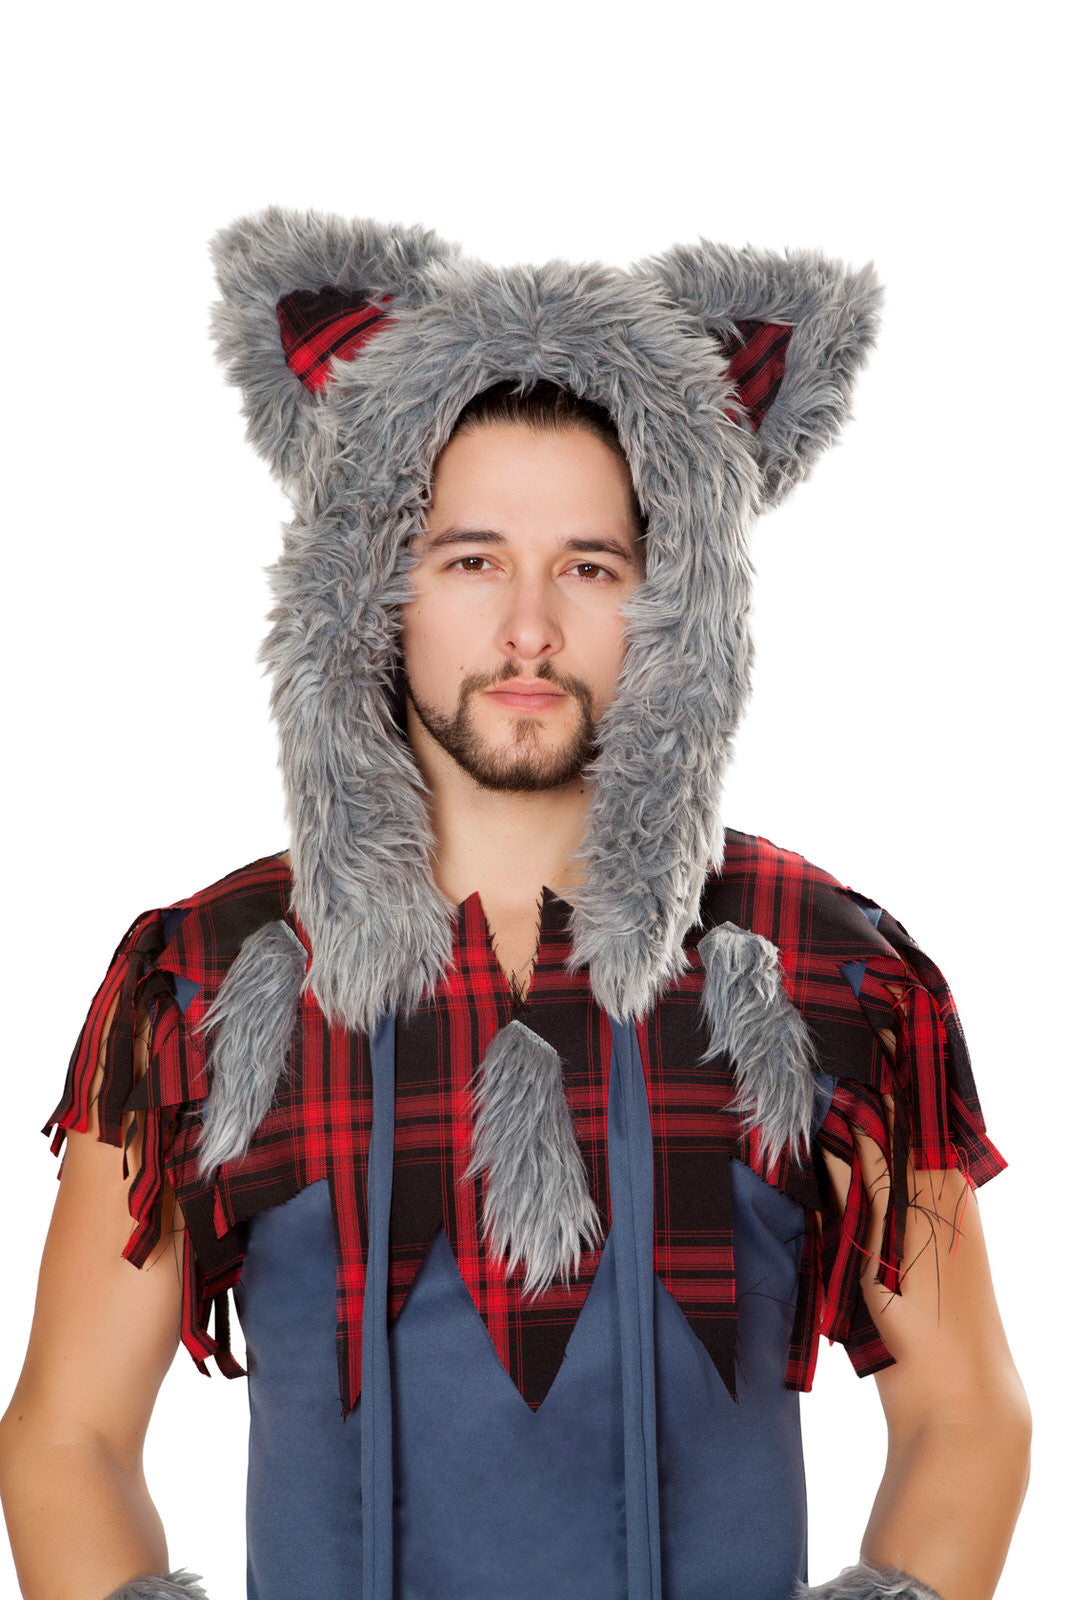 4804 - Wolf Hoodie ${description} | Roma Costume and Roma Confidential wholesale manufacturer of Women Apparel bulk world wide wholesale and world wide drop ship services for Adult Halloween Costumes, Sexy and Elegant Lingerie, Rave Clothing, Club wear, and Christmas Costumes. Costumes, mens, accessories, Roma Costume, Inc., Roma Costume, Roma Confidential, Wholesale clothing, drop ship, drop ship service, Wholesale Lingerie, Wholesale Adult Halloween Costumes, Rave Clothing, EDM Clothing, Festival Wear, Christmas Costumes, Clubwear, Club wear.